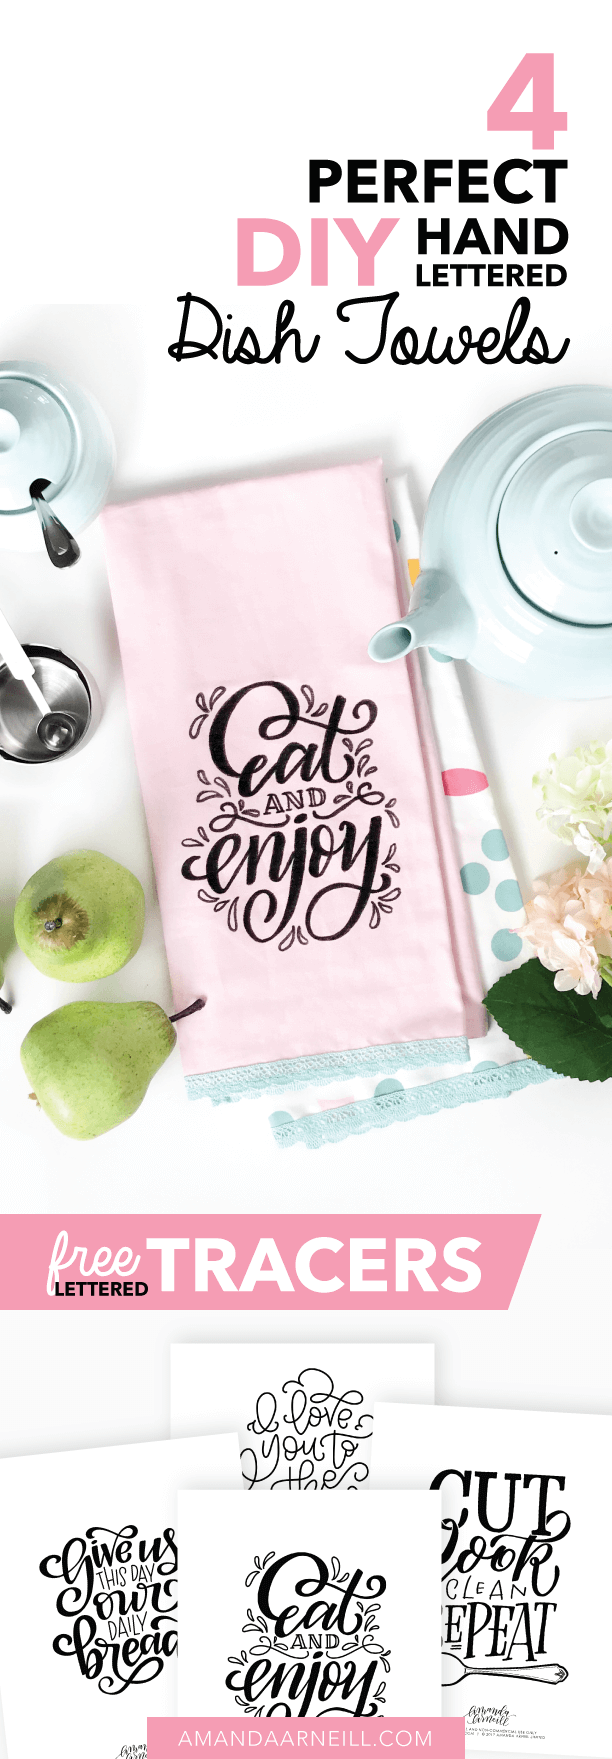 graphic regarding Printable Towels referred to as 4 Great Do-it-yourself Hand Lettered Dish Towels with Absolutely free Lettered